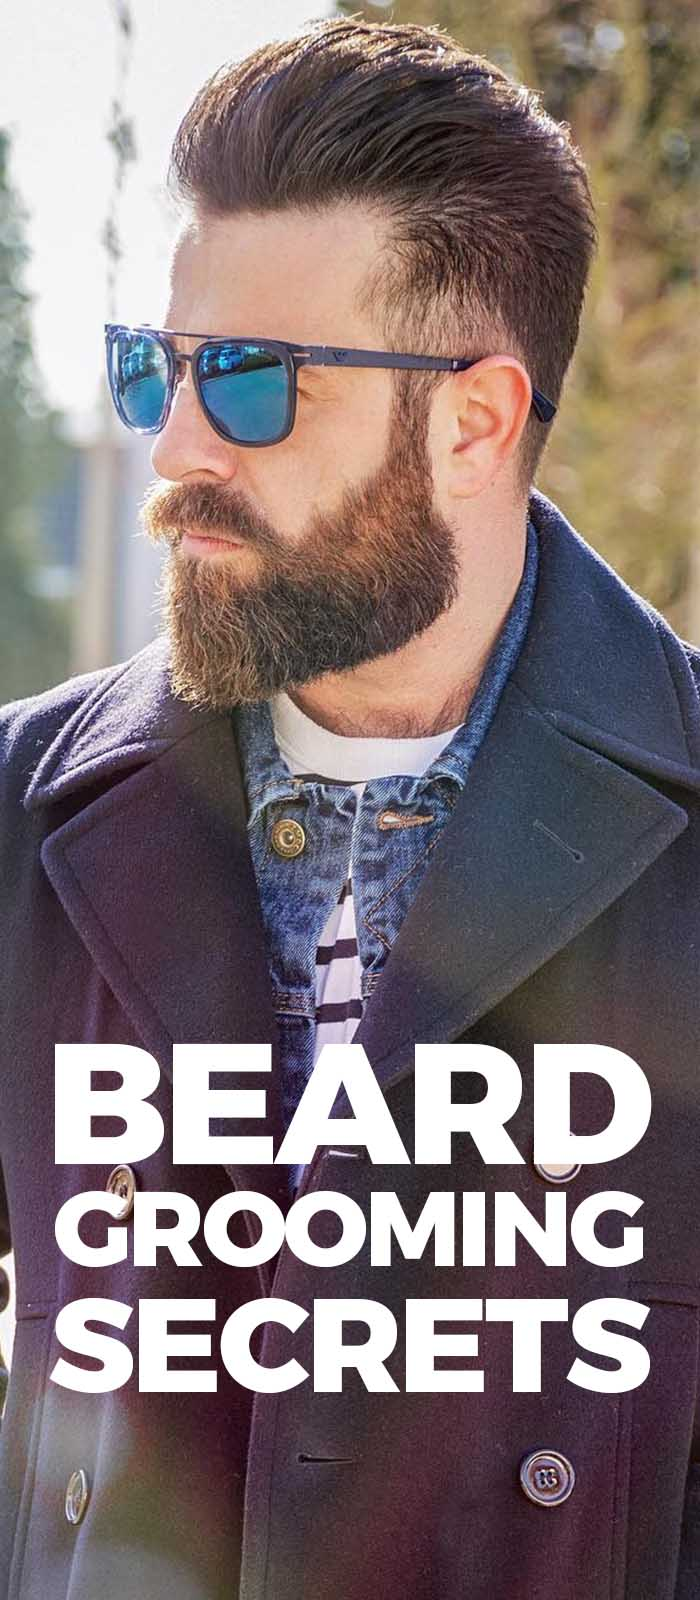 Beard Grooming Secrets